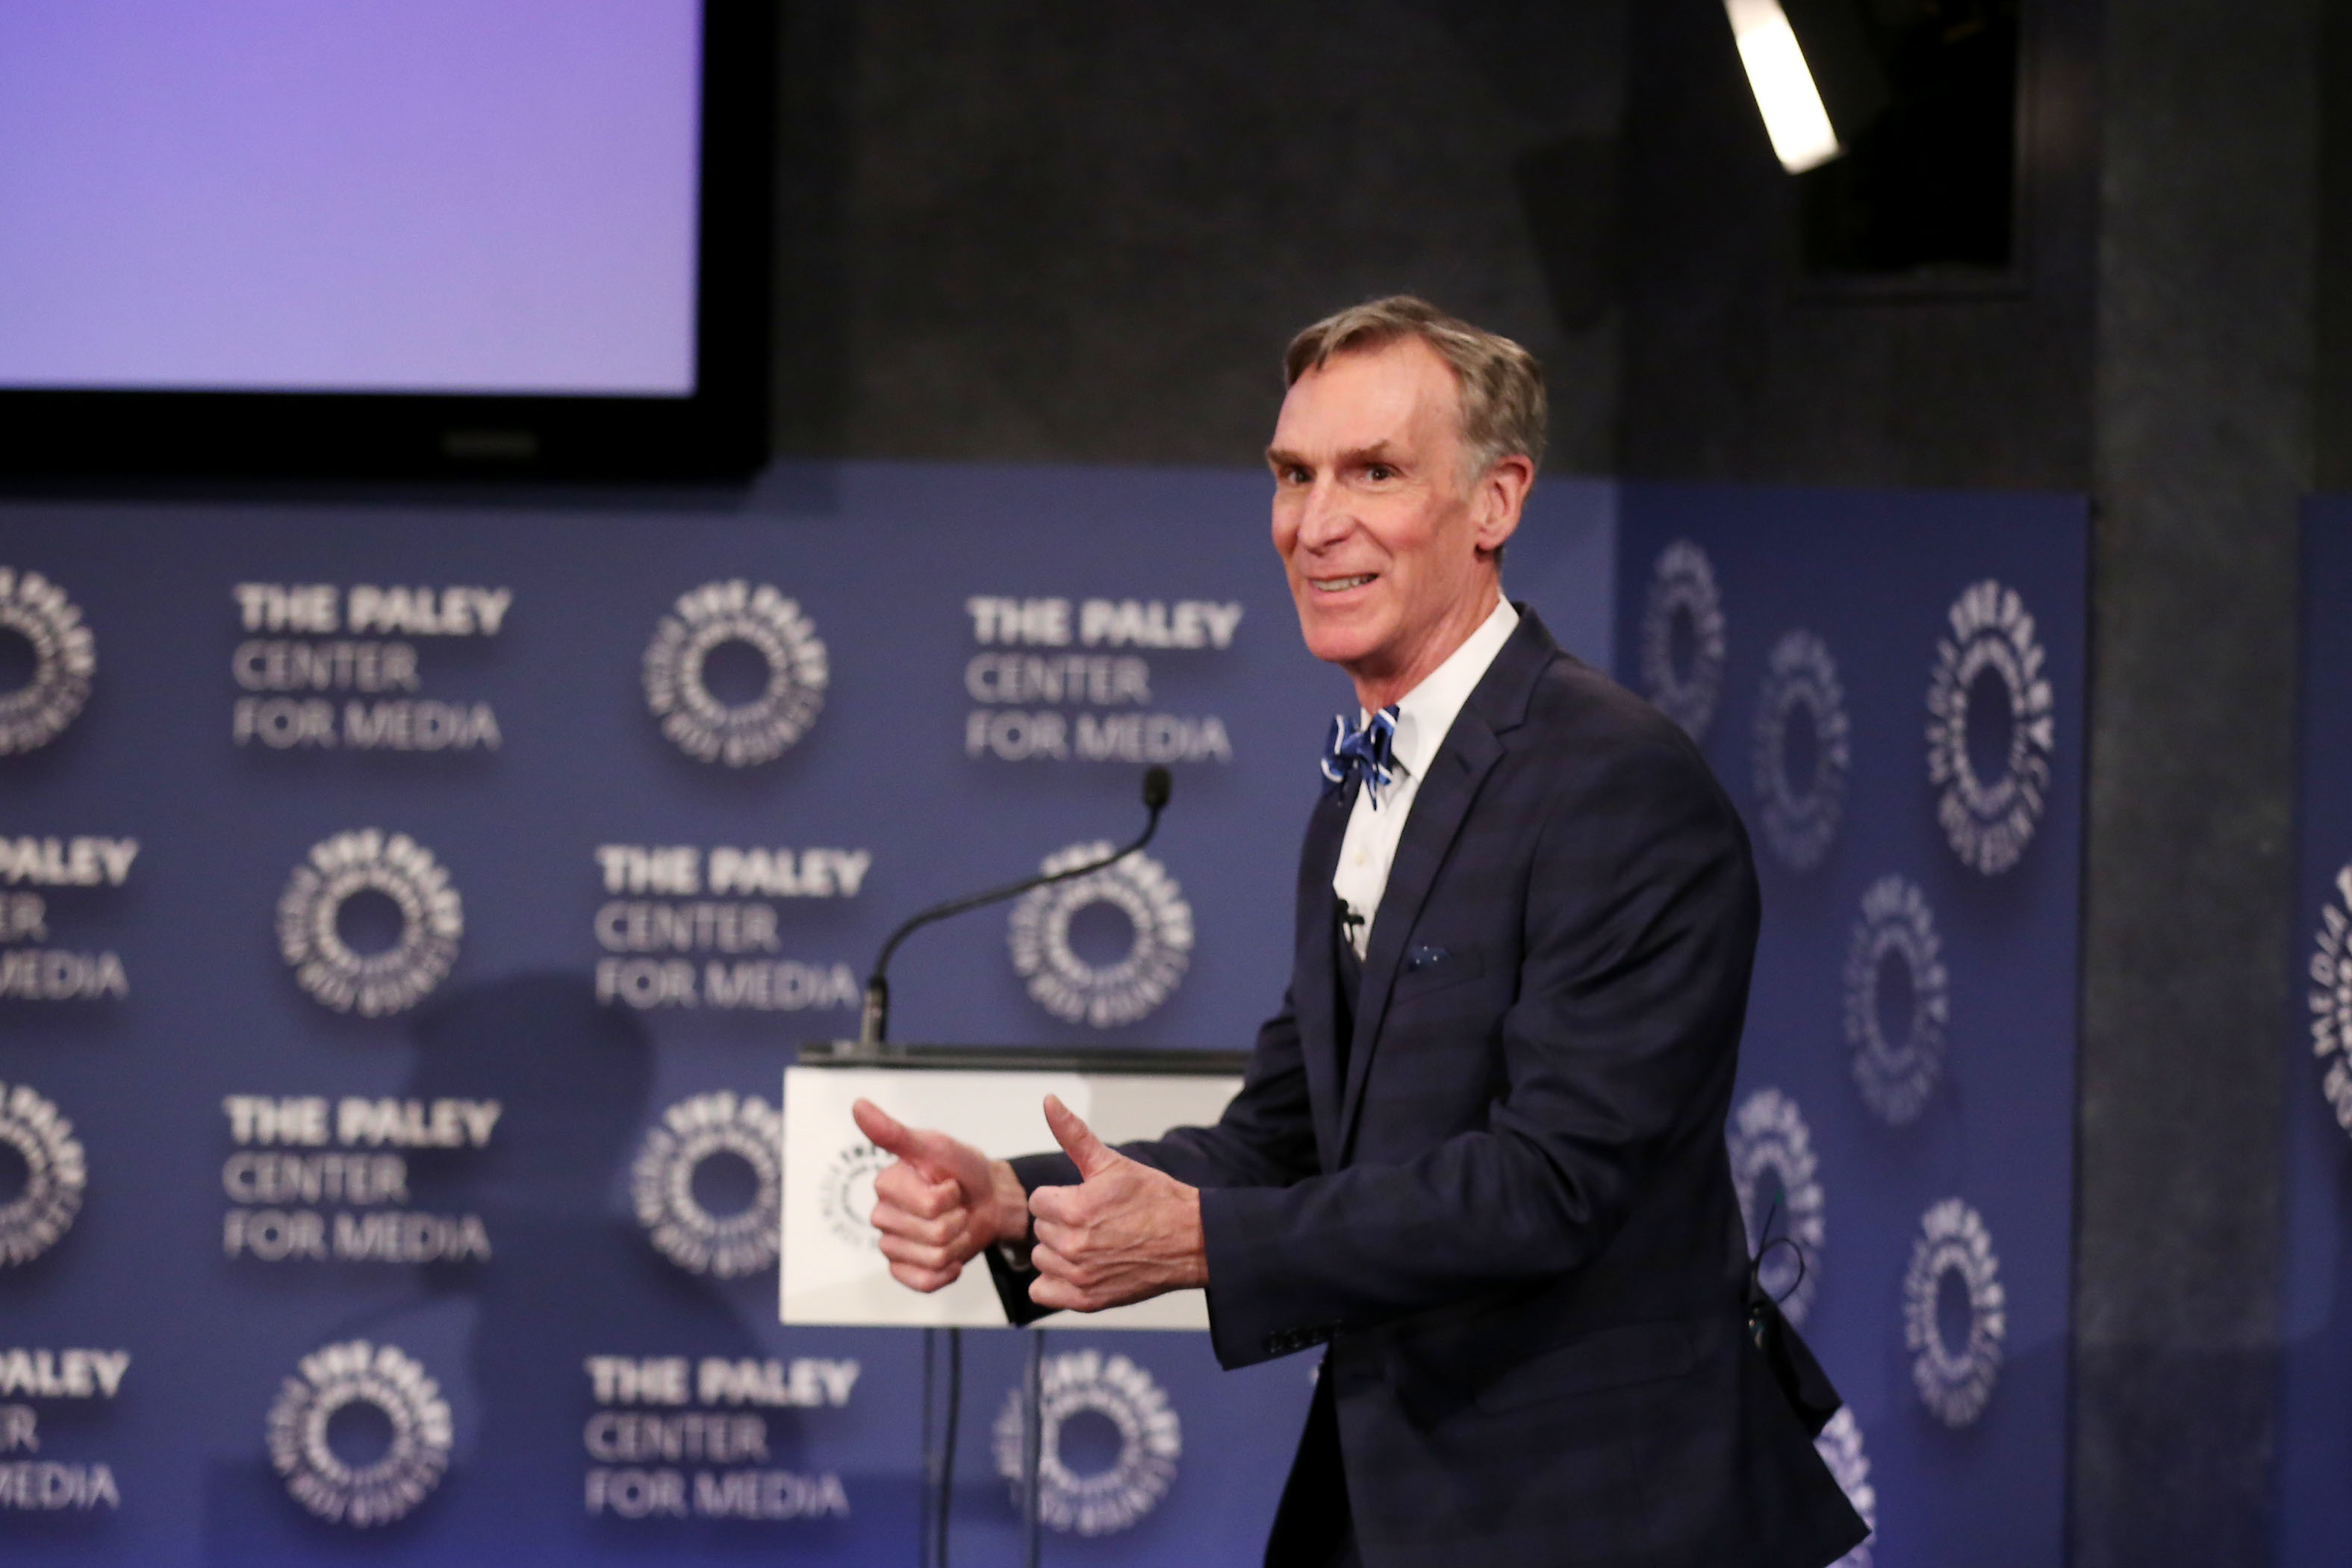 Bill Nye wants engineers in office but is reluctant to run himself.